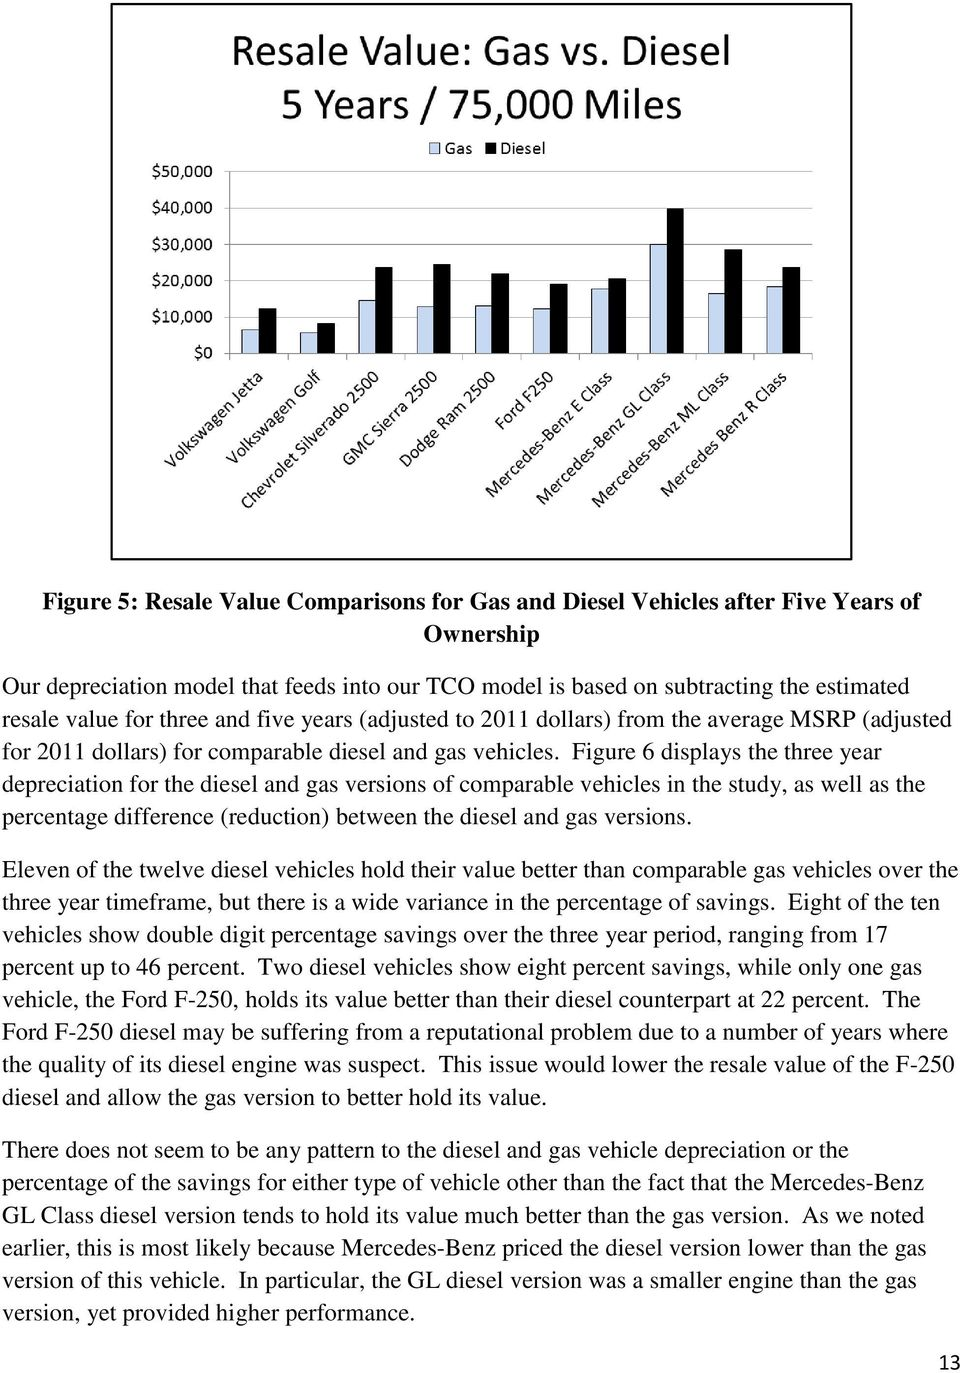 Figure 6 displays the three year depreciation for the diesel and gas versions of comparable vehicles in the study, as well as the percentage difference (reduction) between the diesel and gas versions.